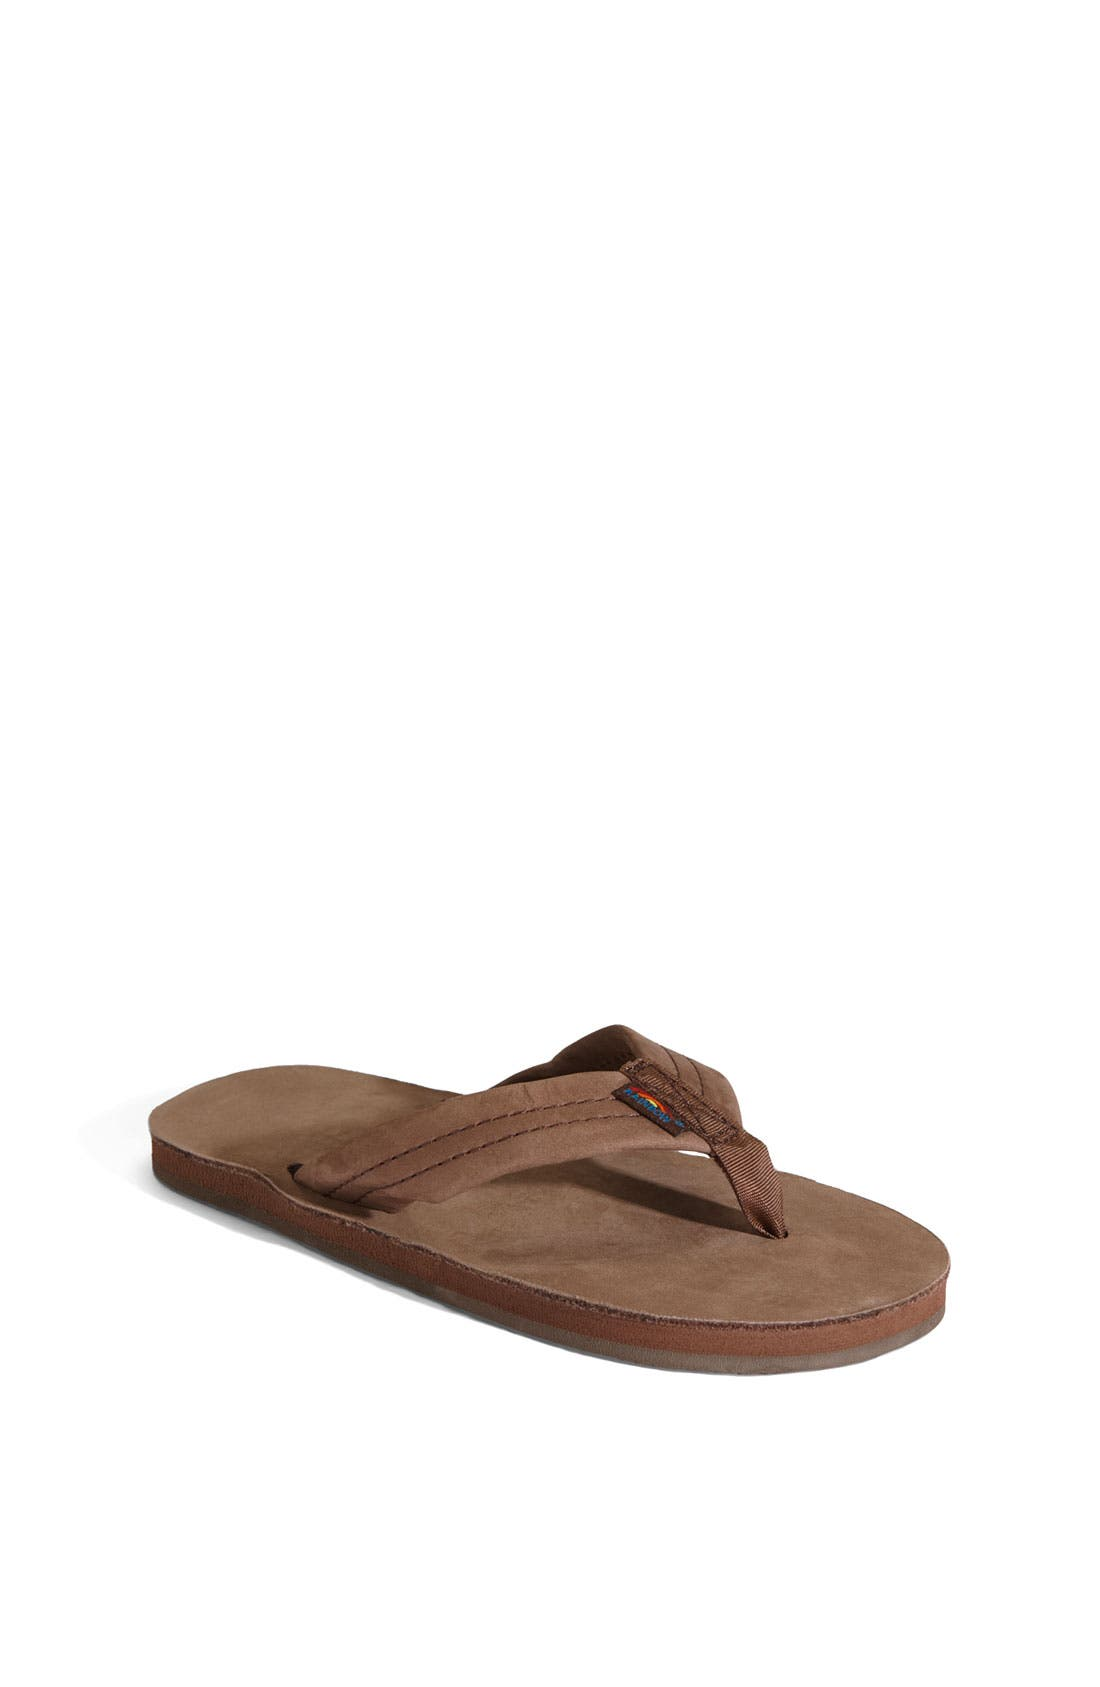 Leather Sandal,                             Main thumbnail 1, color,                             EXPRESSO